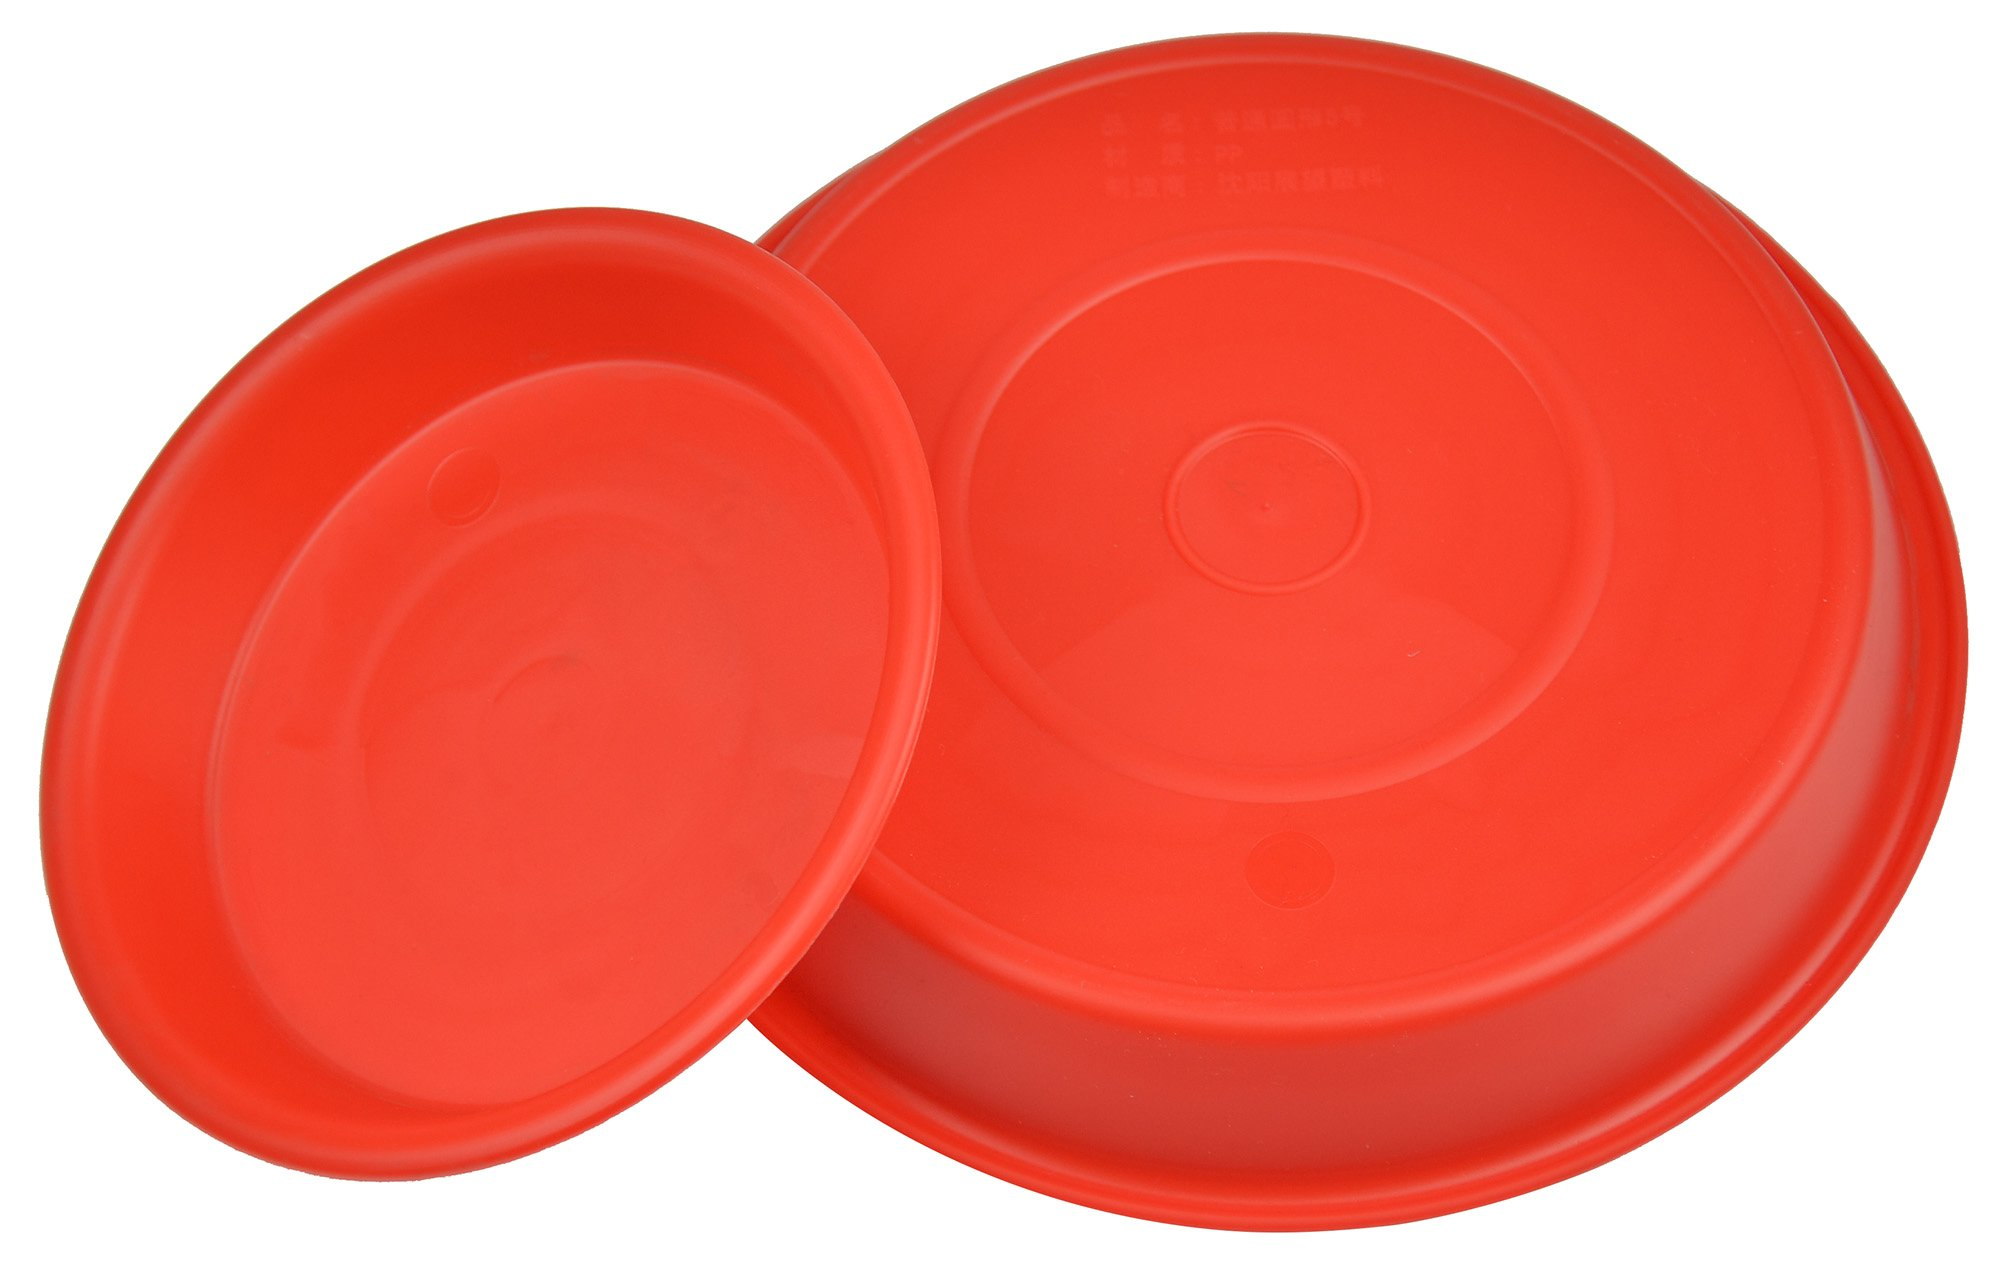 7.7'' Round Plant Saucer Planter Tray Pat Pallet for Flowerpot,Red,960 Count by Zhanwang (Image #2)